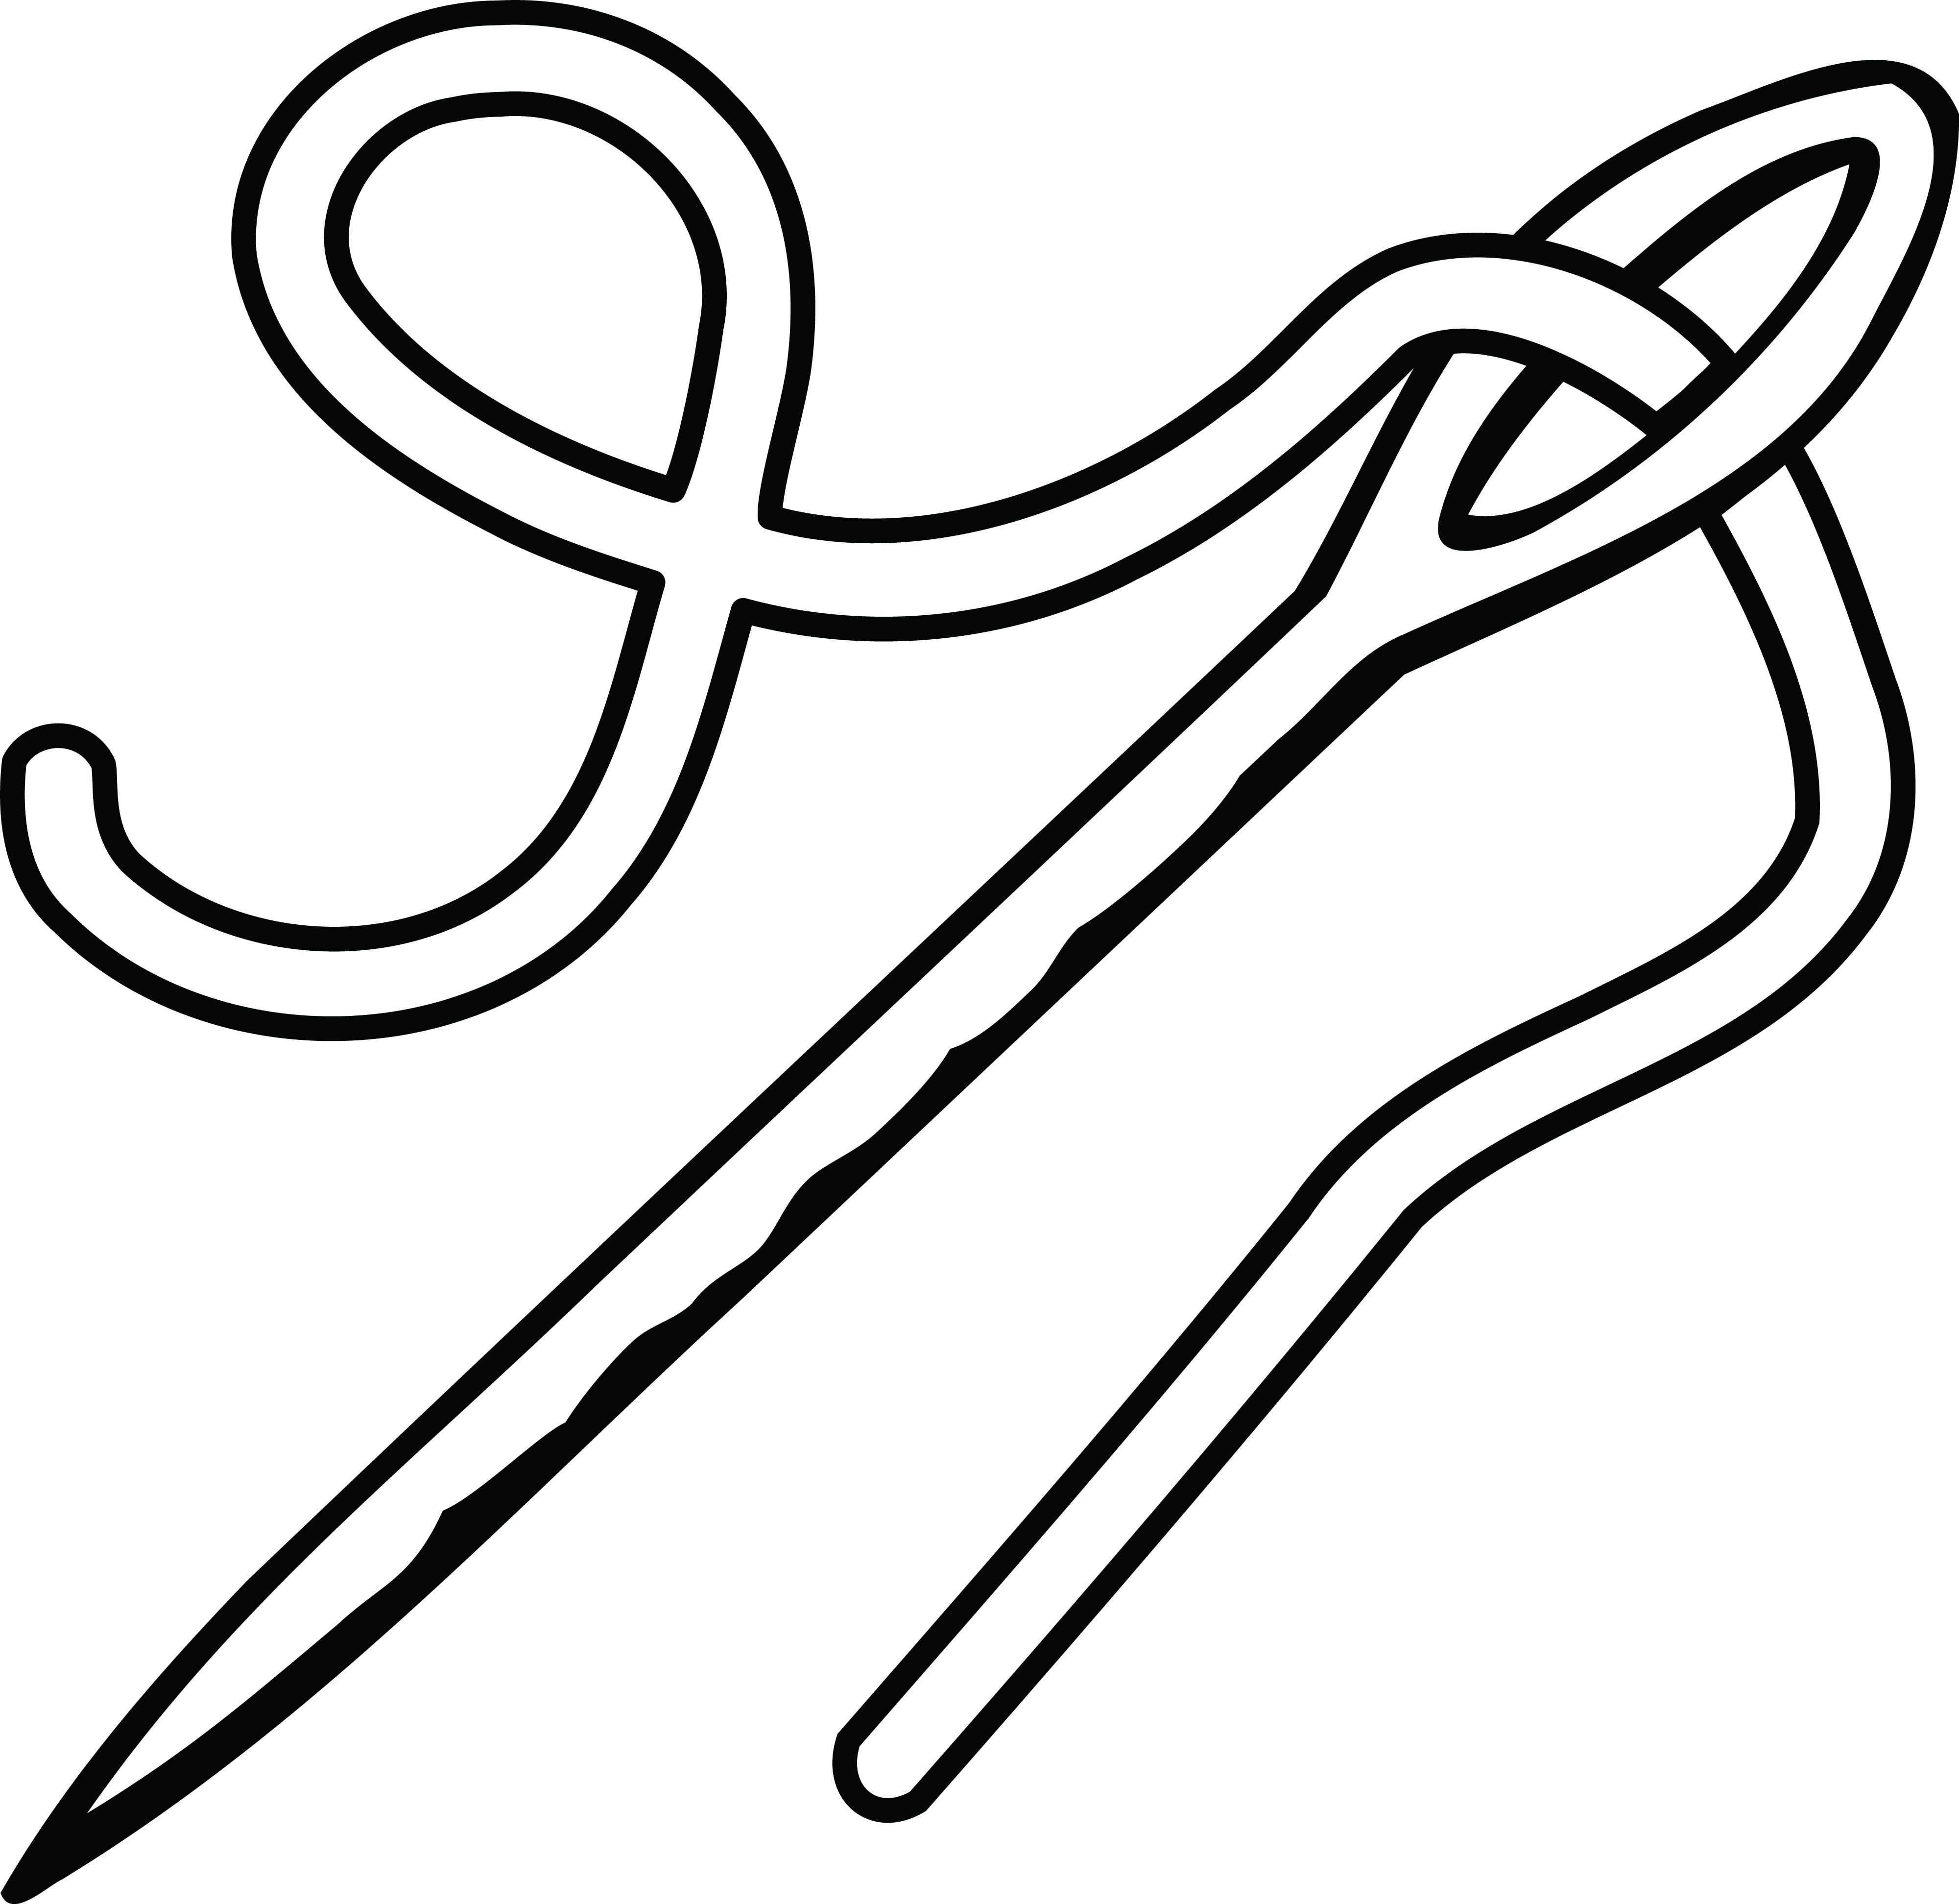 Free Clipart Of A Needle And Thread